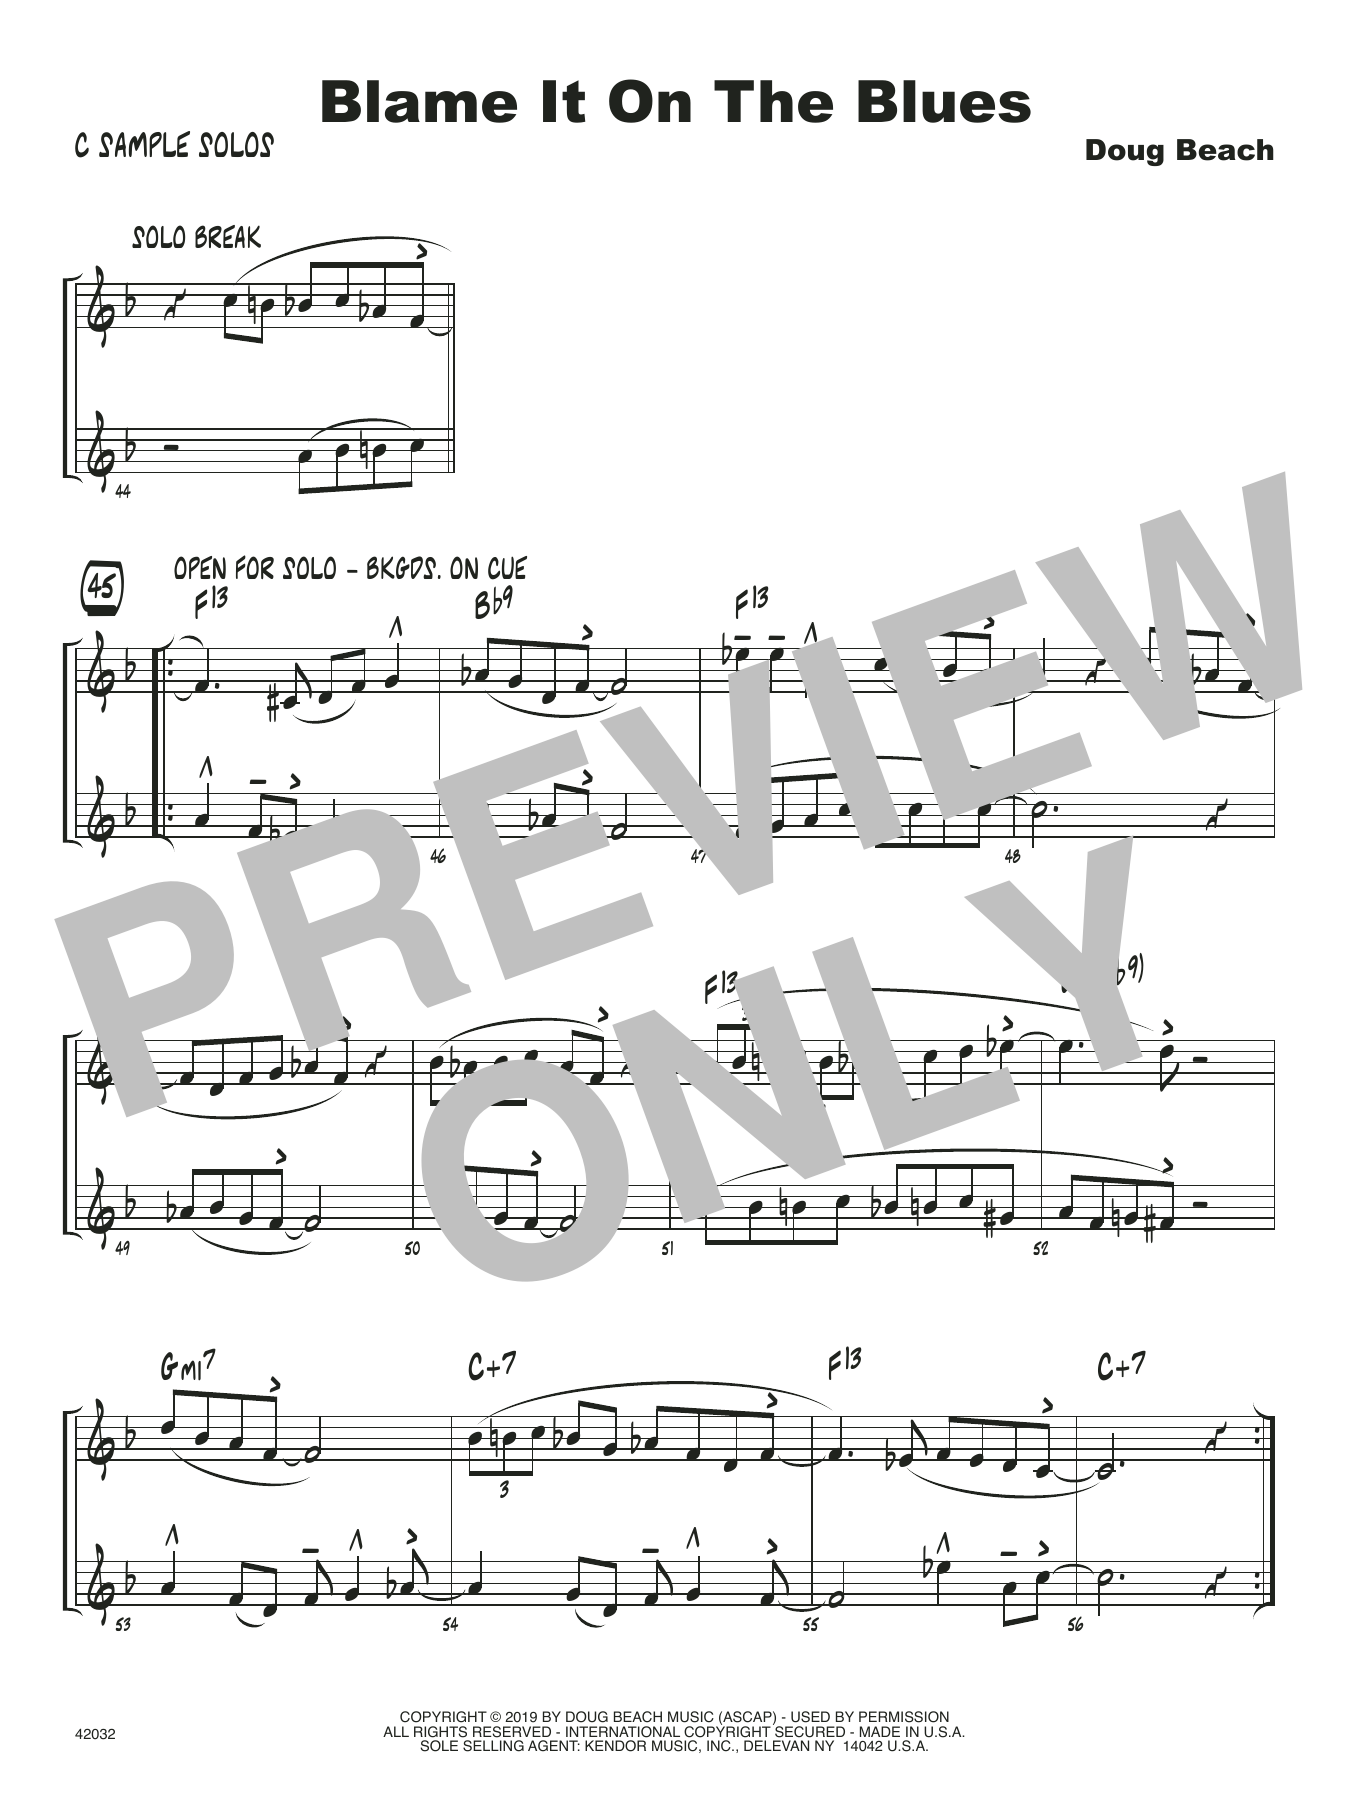 Doug Beach Blame It On The Blues - C Solo Sheet sheet music notes and chords. Download Printable PDF.